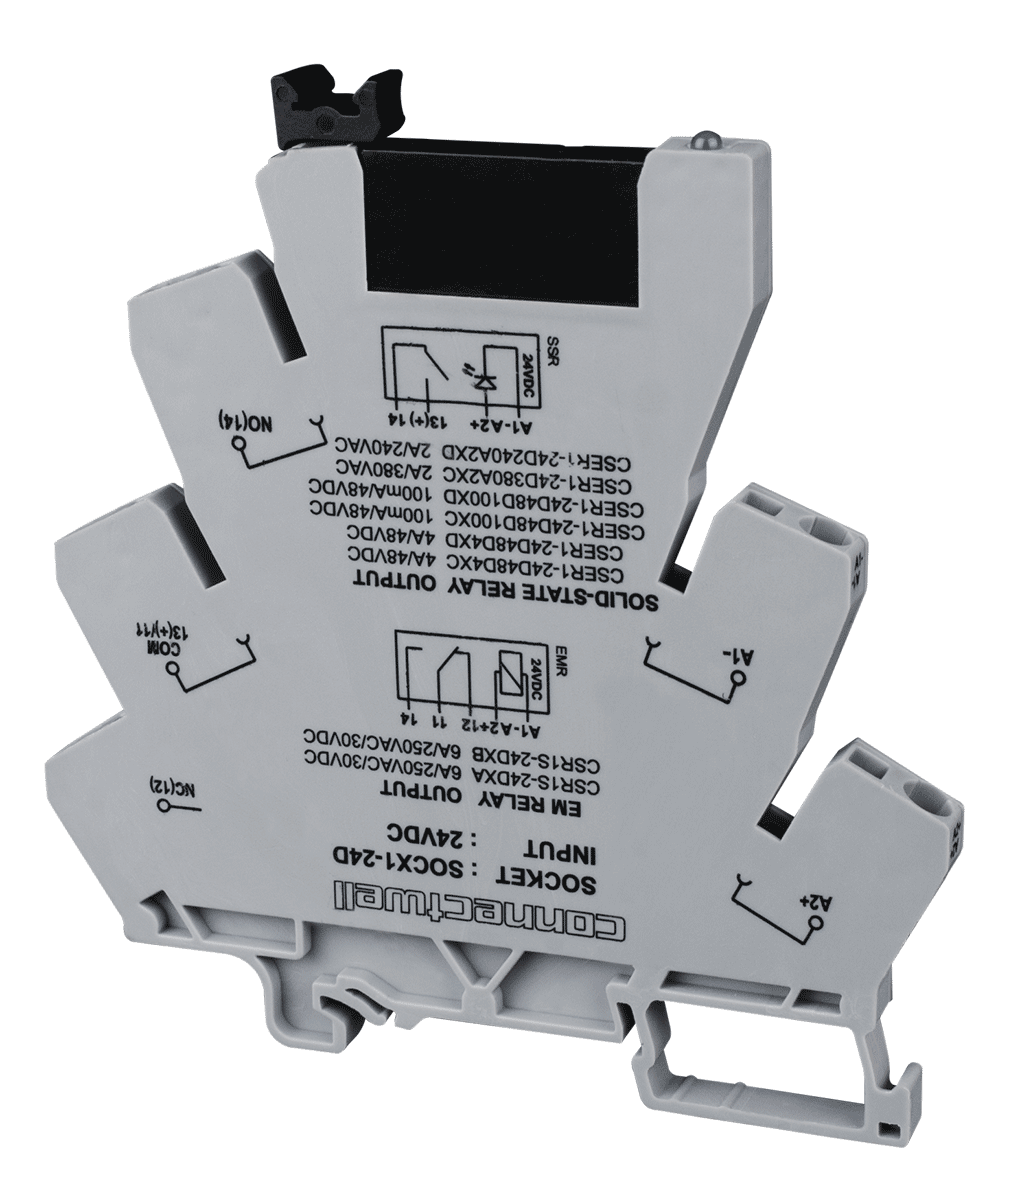 S L furthermore S L also Imfi Xx S Xx as well S L furthermore D T X. on din rail mount 4 channel ssr solid state relay interface module